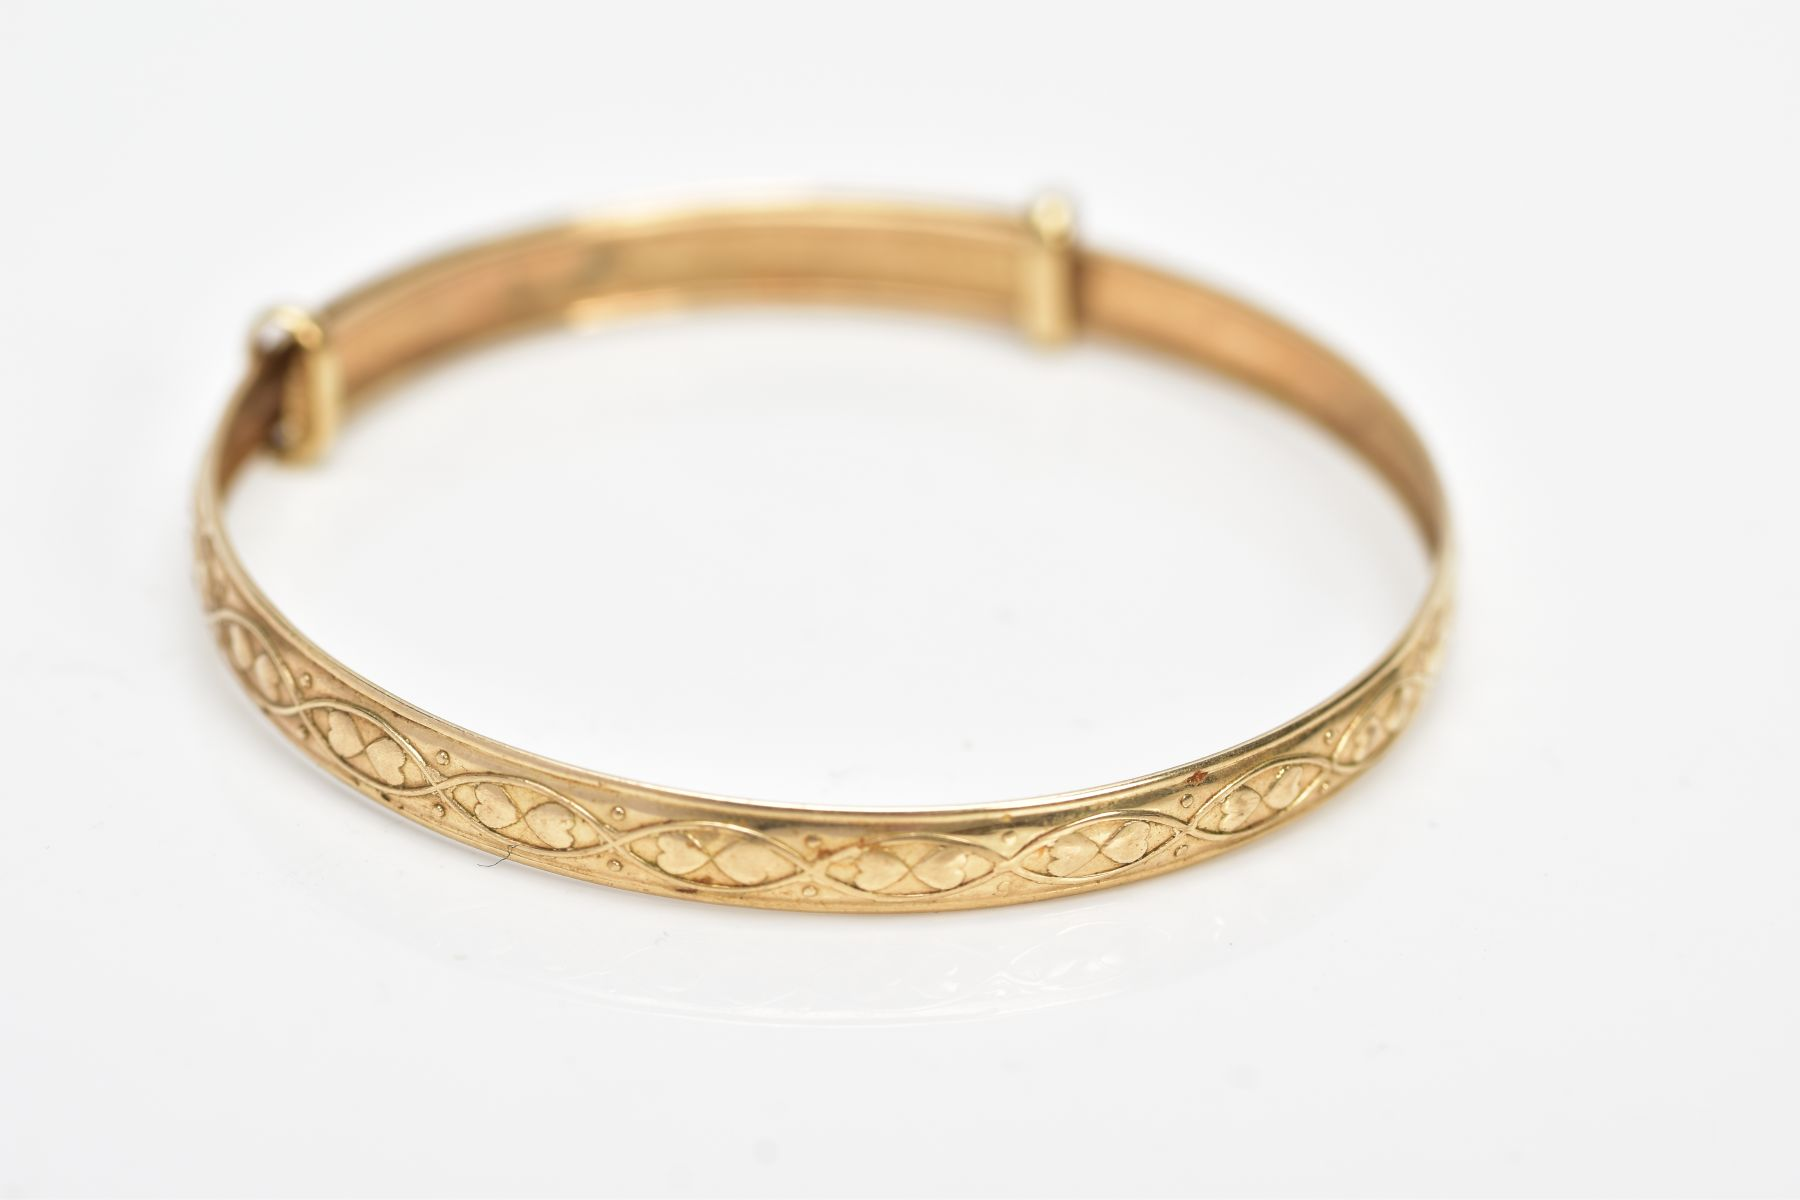 A 9CT GOLD CHRISTENING BANGLE, embossed heart and scroll design, hallmarked 9ct gold Birmingham,